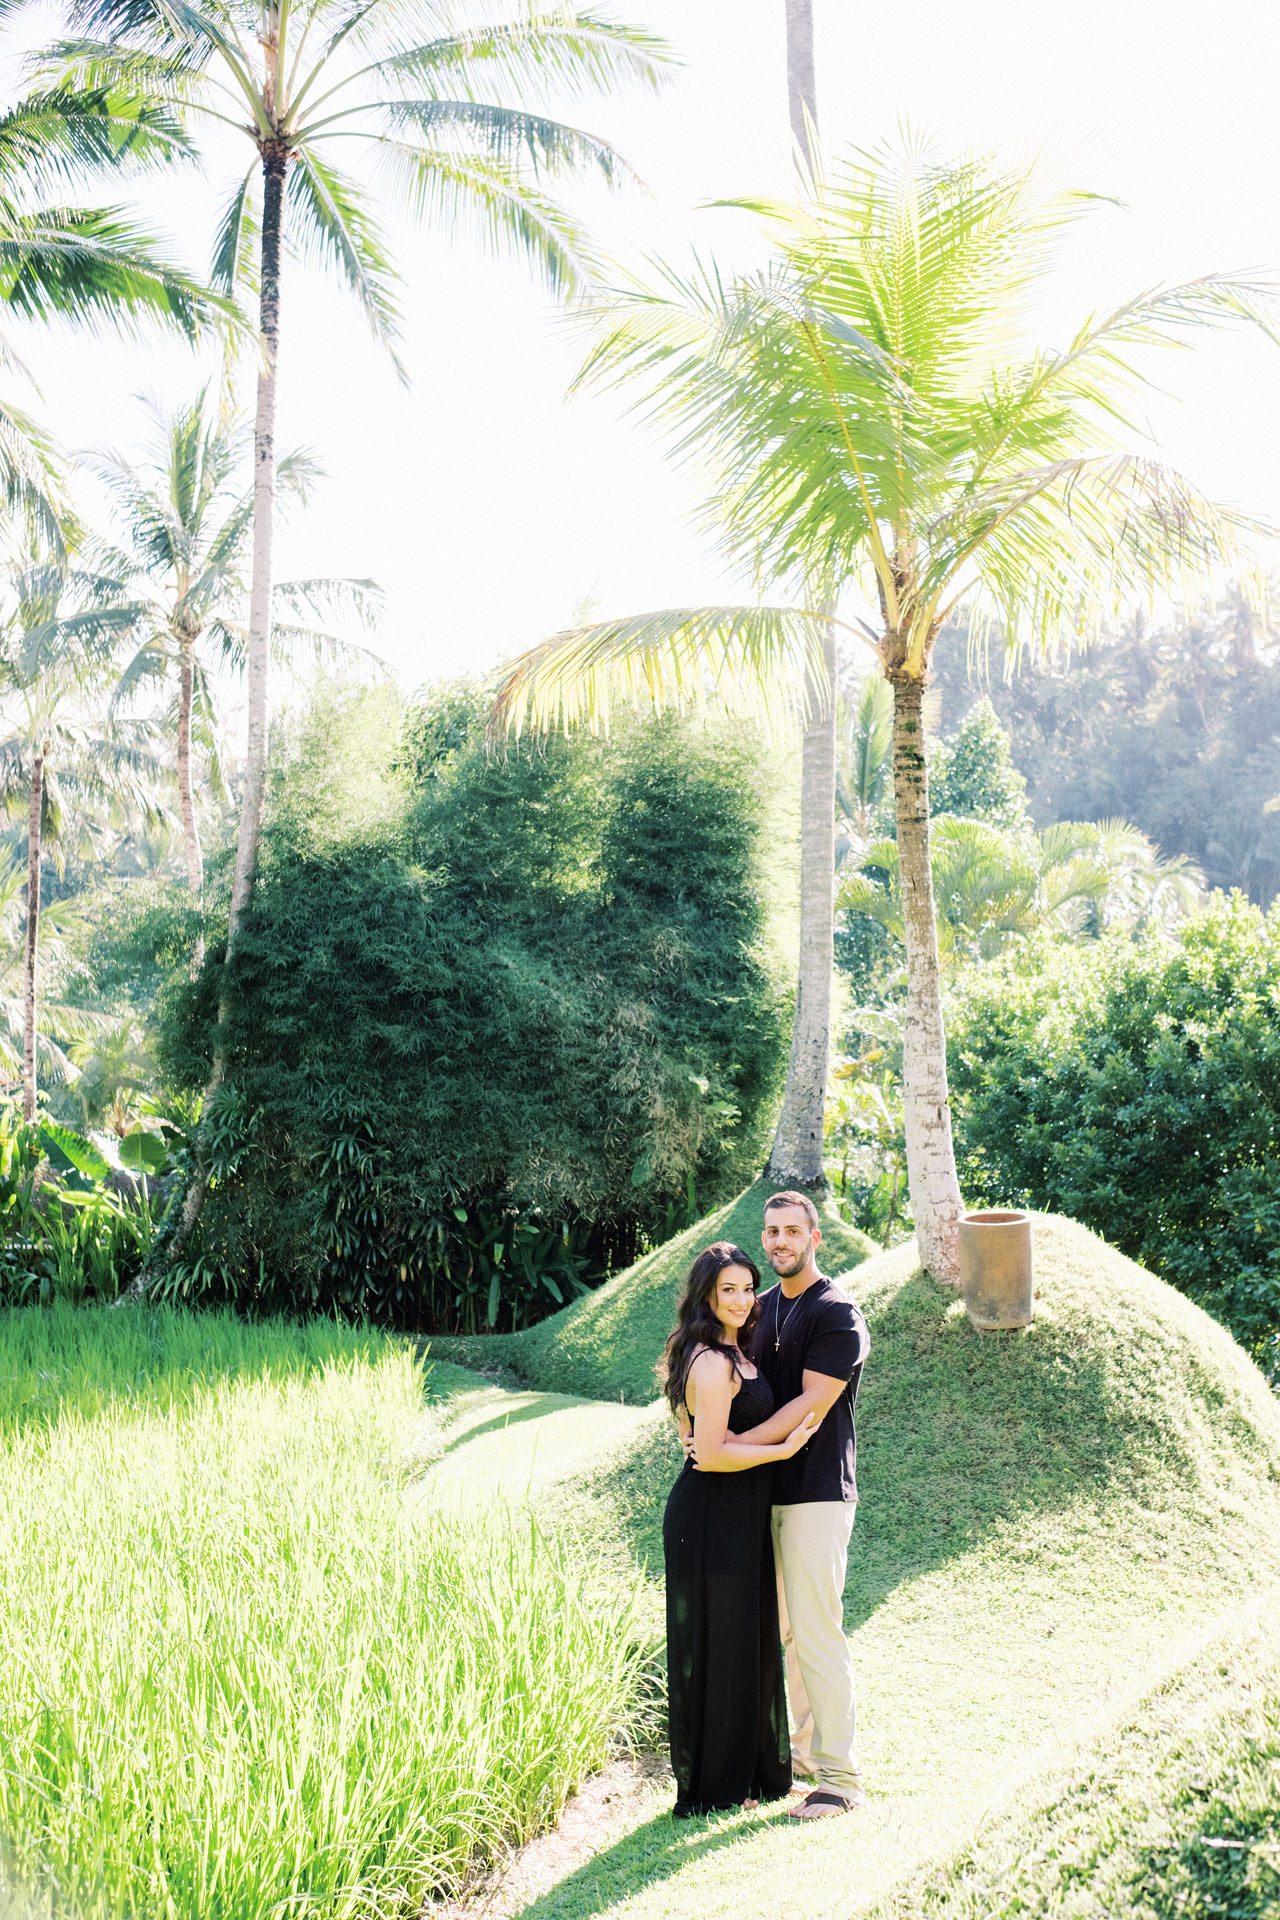 Honeymoon Photo Session at The World's Best Resort 2